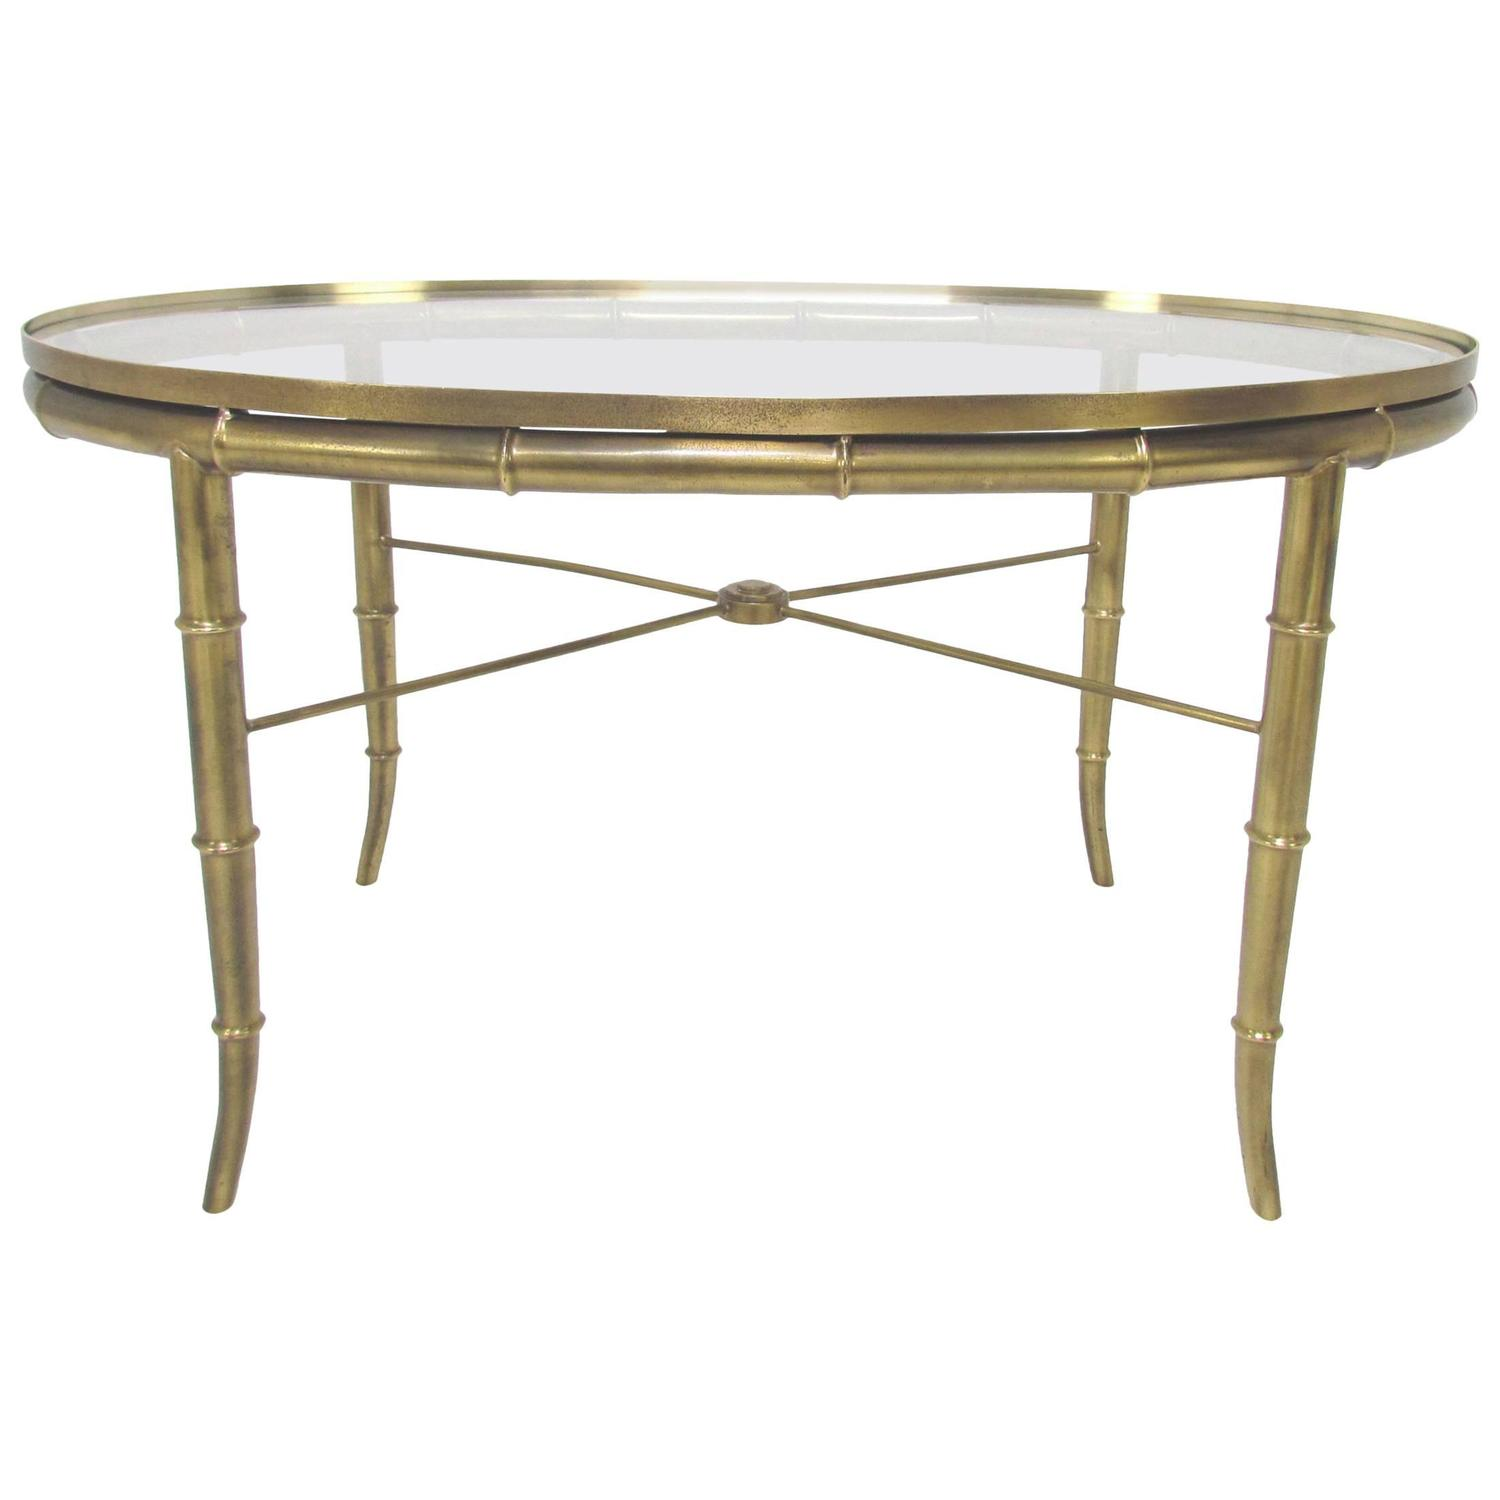 Hollywood Regency Italian Brass Coffee Or Cocktail Table By Mastercraft At 1stdibs